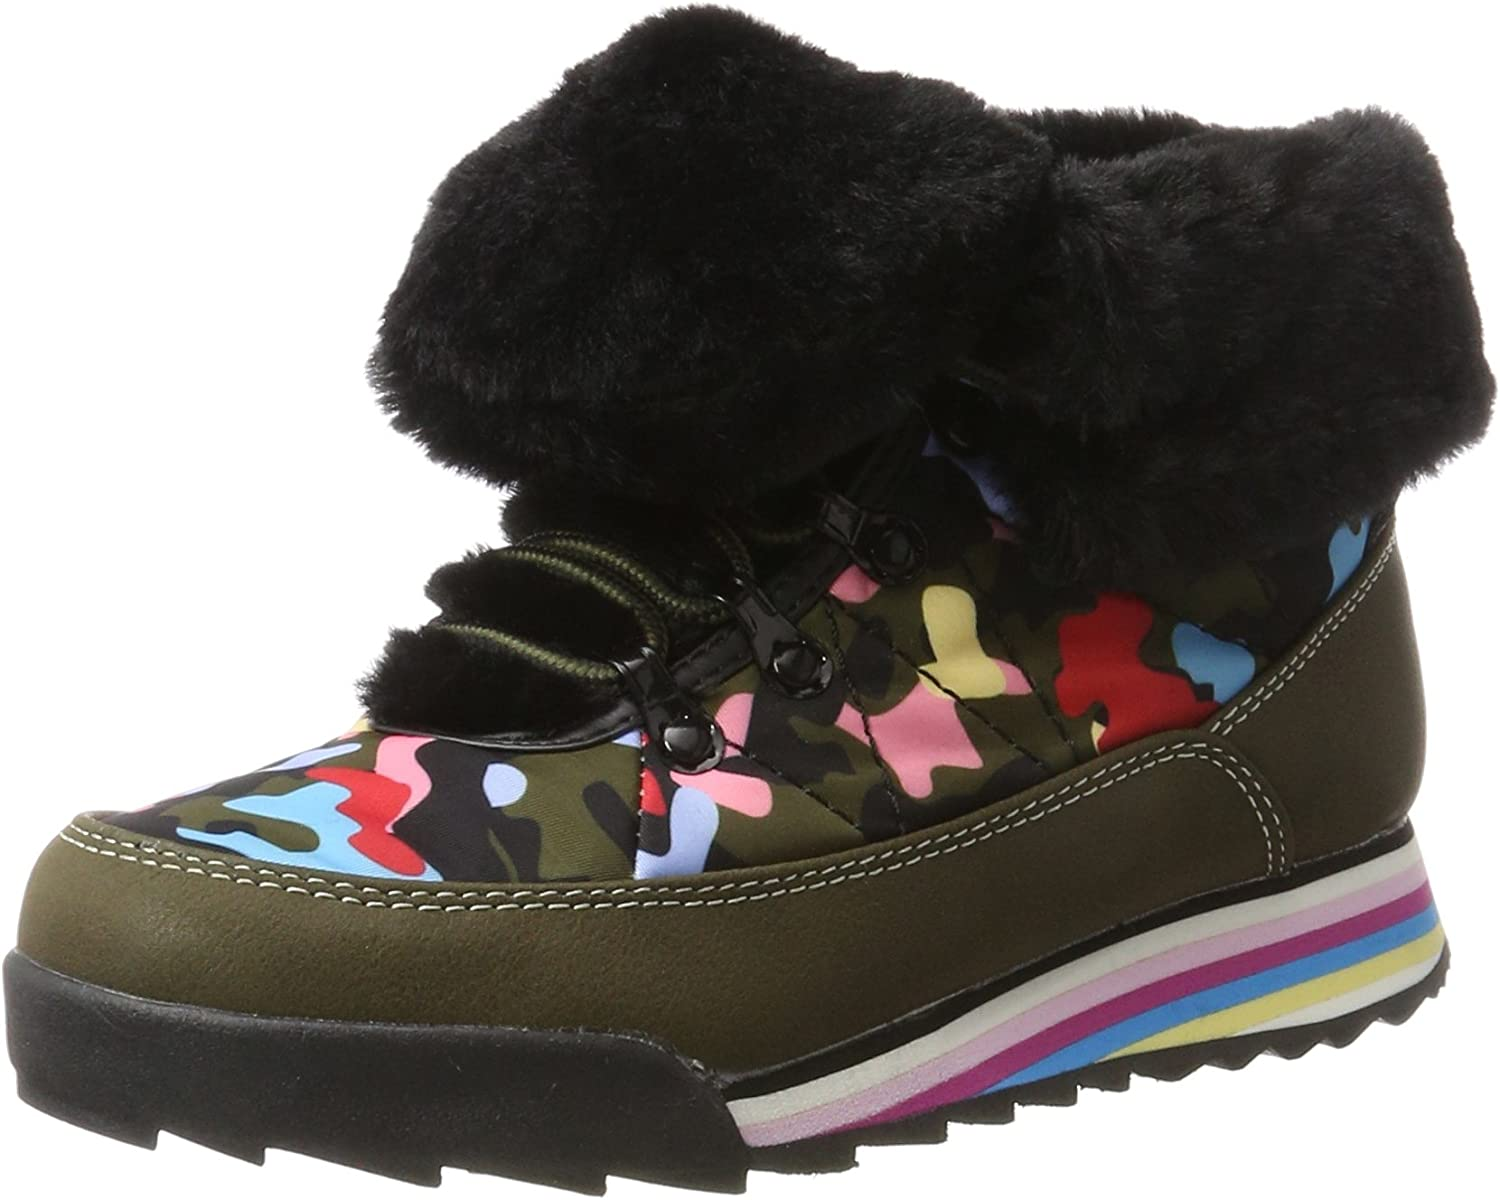 Rocket Dog ICEE Rival Womens Winter Snow Boots